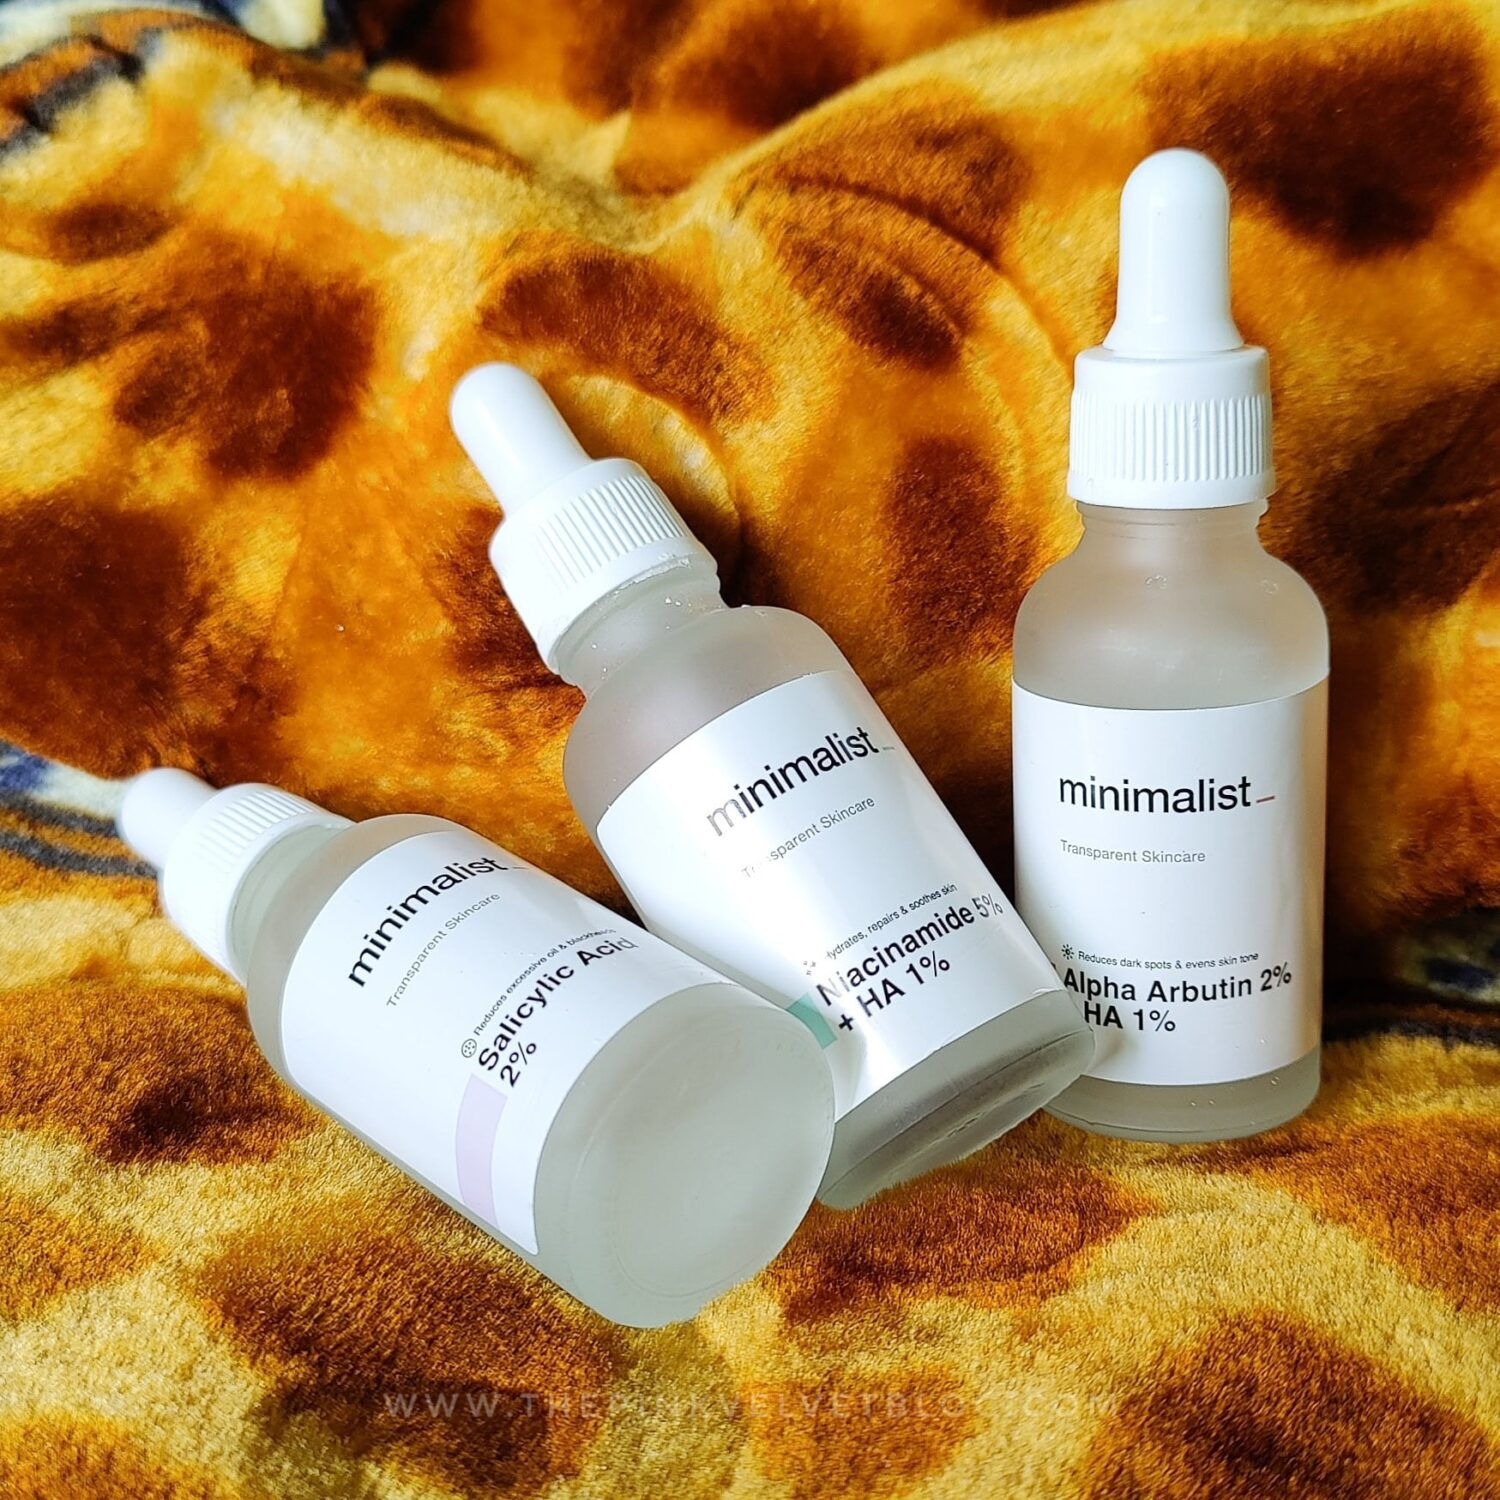 Minimalist Serum Review – Salicylic Acid, Niacinamide, and Alpha Arbutin